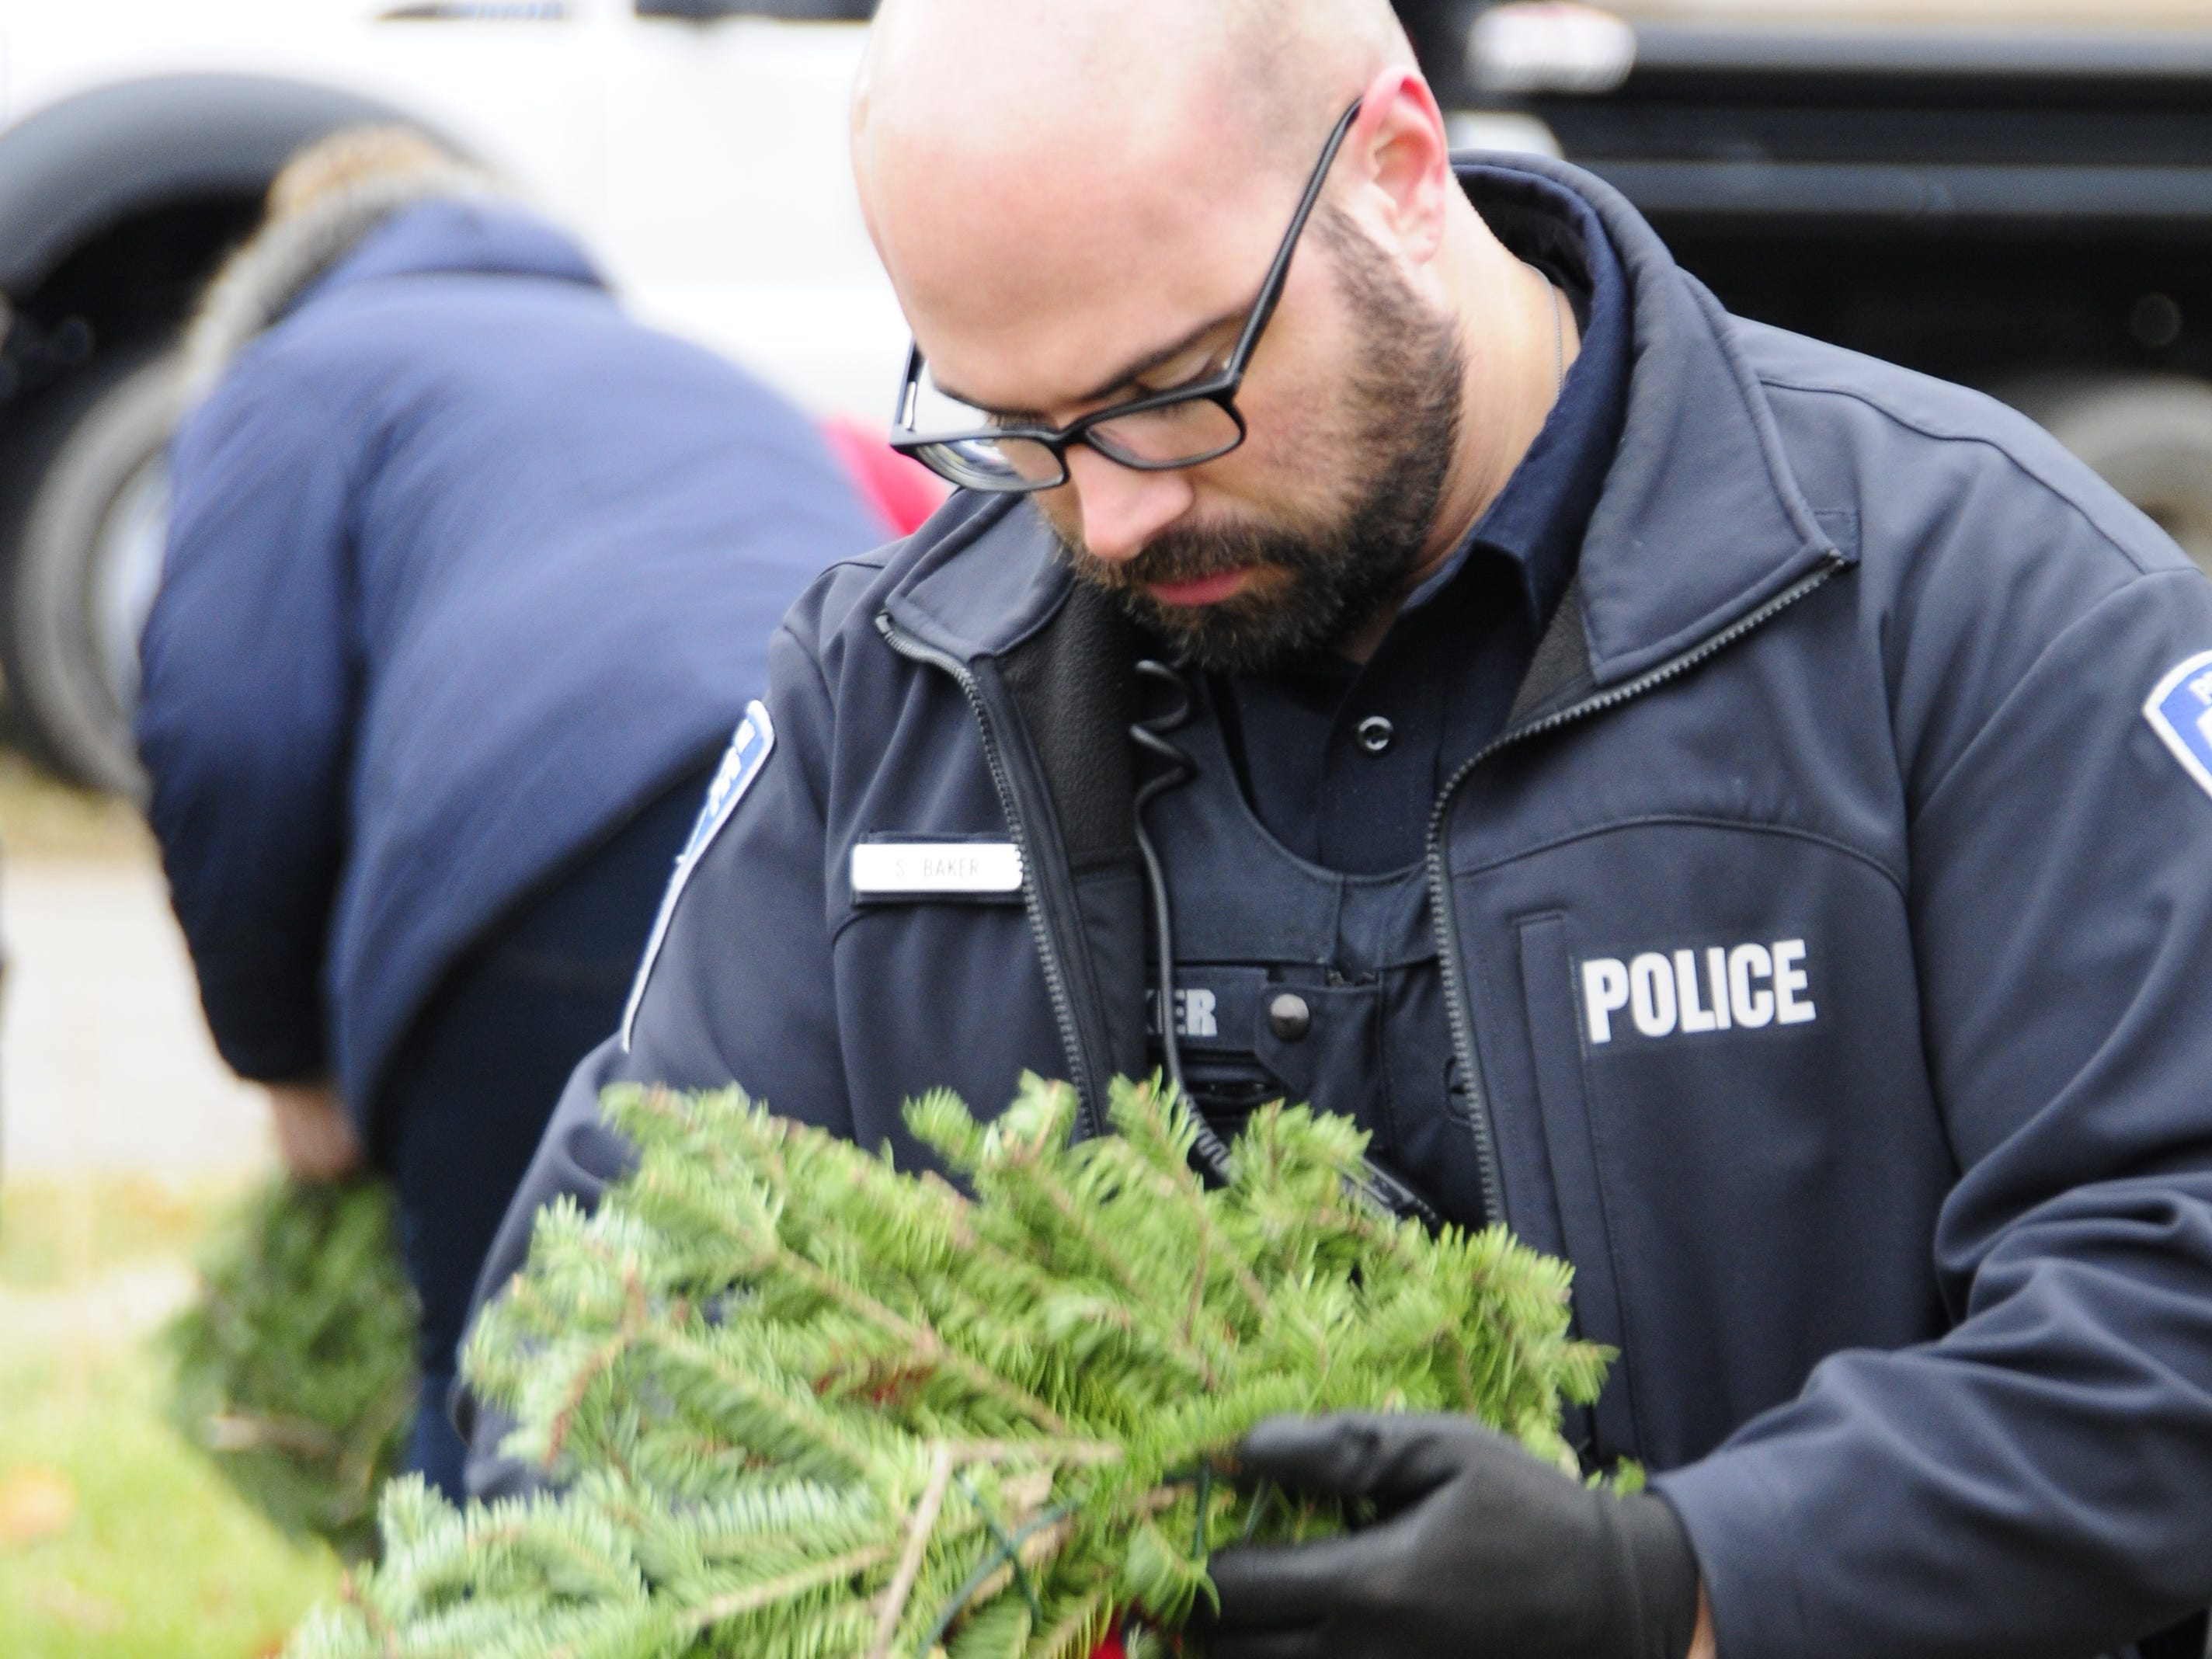 Port Huron Police Officer Sam Baker places a wreath during Wreaths Across America on Saturday, Dec. 15, 2018 at St. Clair County Allied Veterans Cemetery in Port Huron.